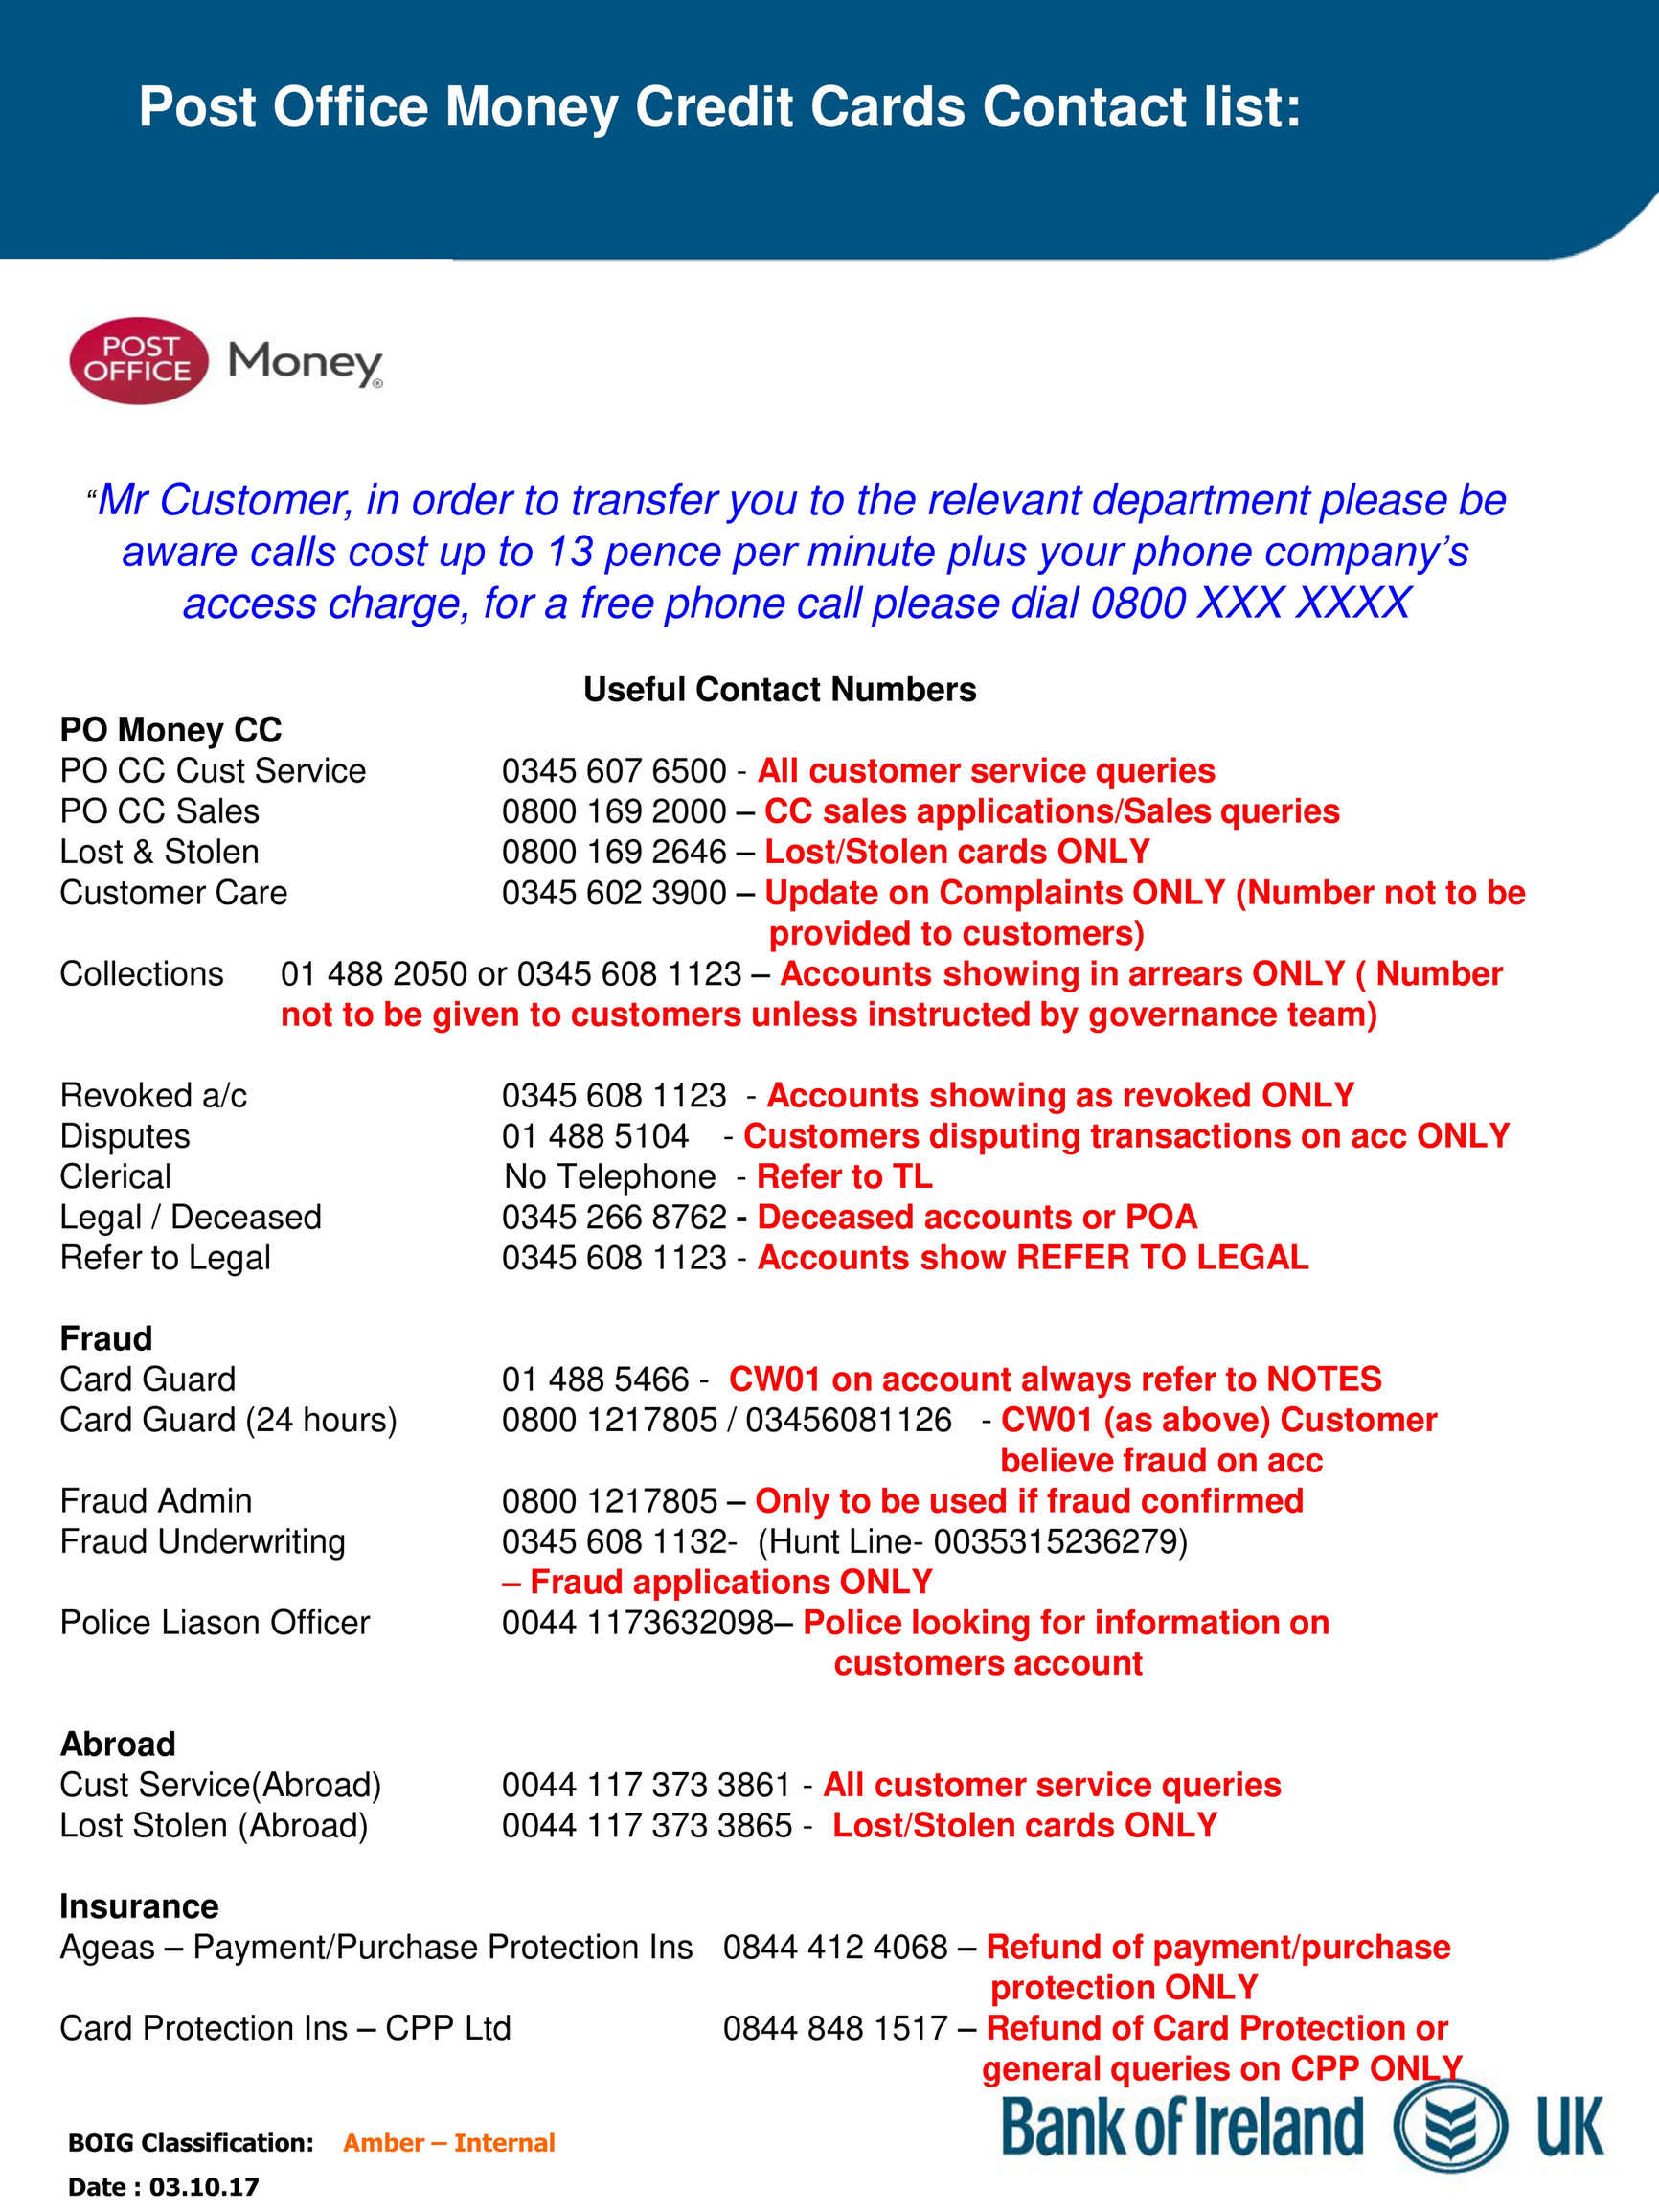 Boi Post Office Money 20171003 Page 1 Created With Publitas Com